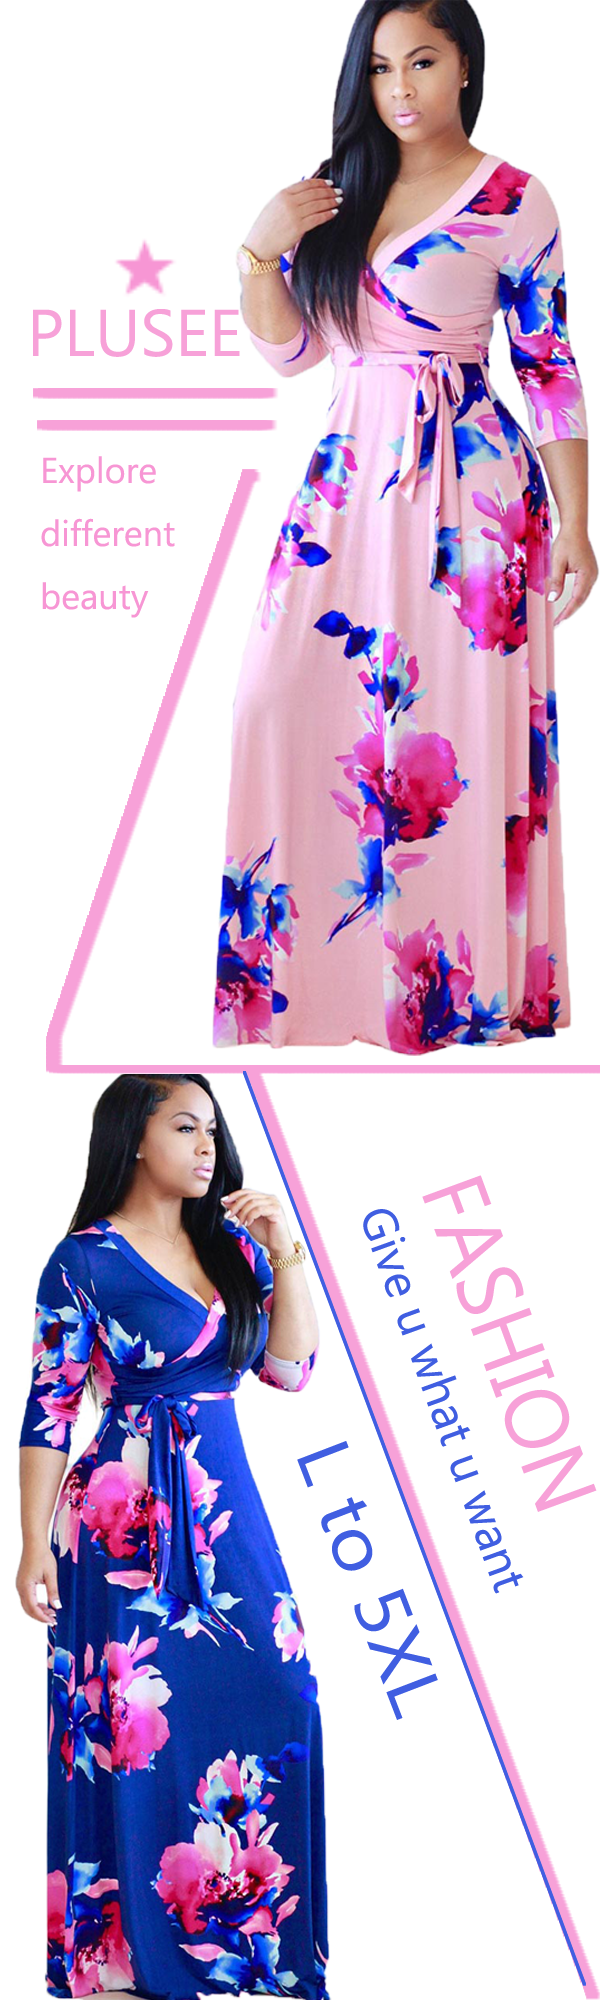 NO WORRIES ANYMORE! Plusee presents Plus Size Floral Print Dresses specially designed for all the Big Ladies.